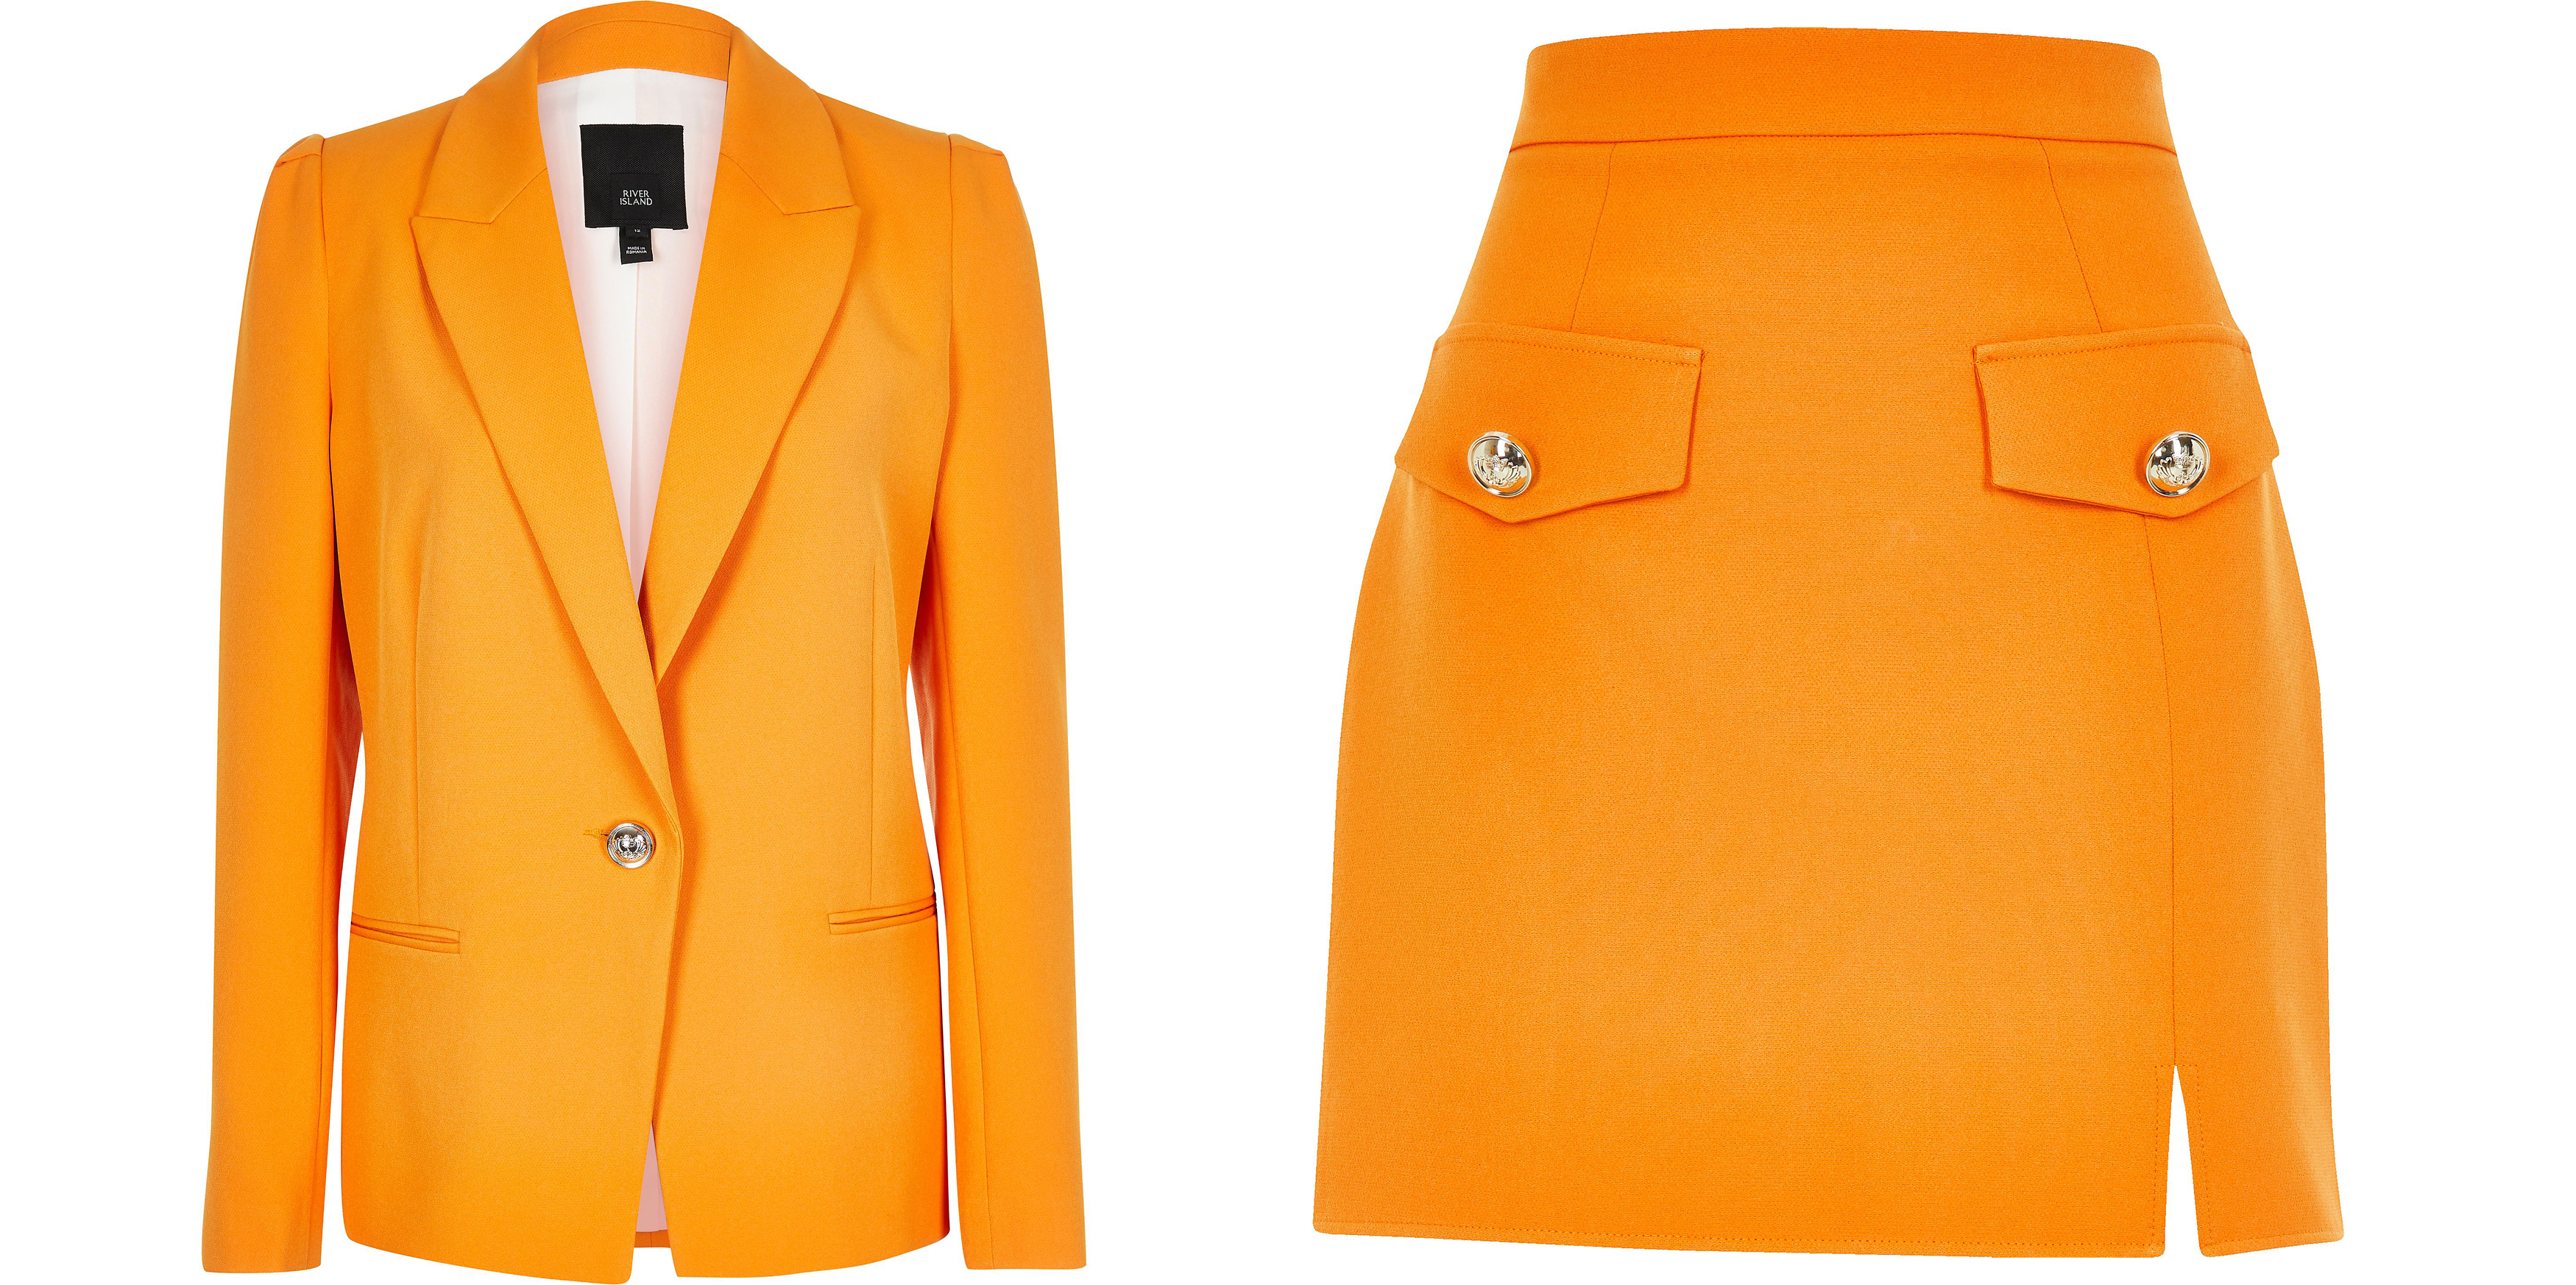 River Island Orange Puff Sleeve Blazer, Orange A Line Mini Skirt